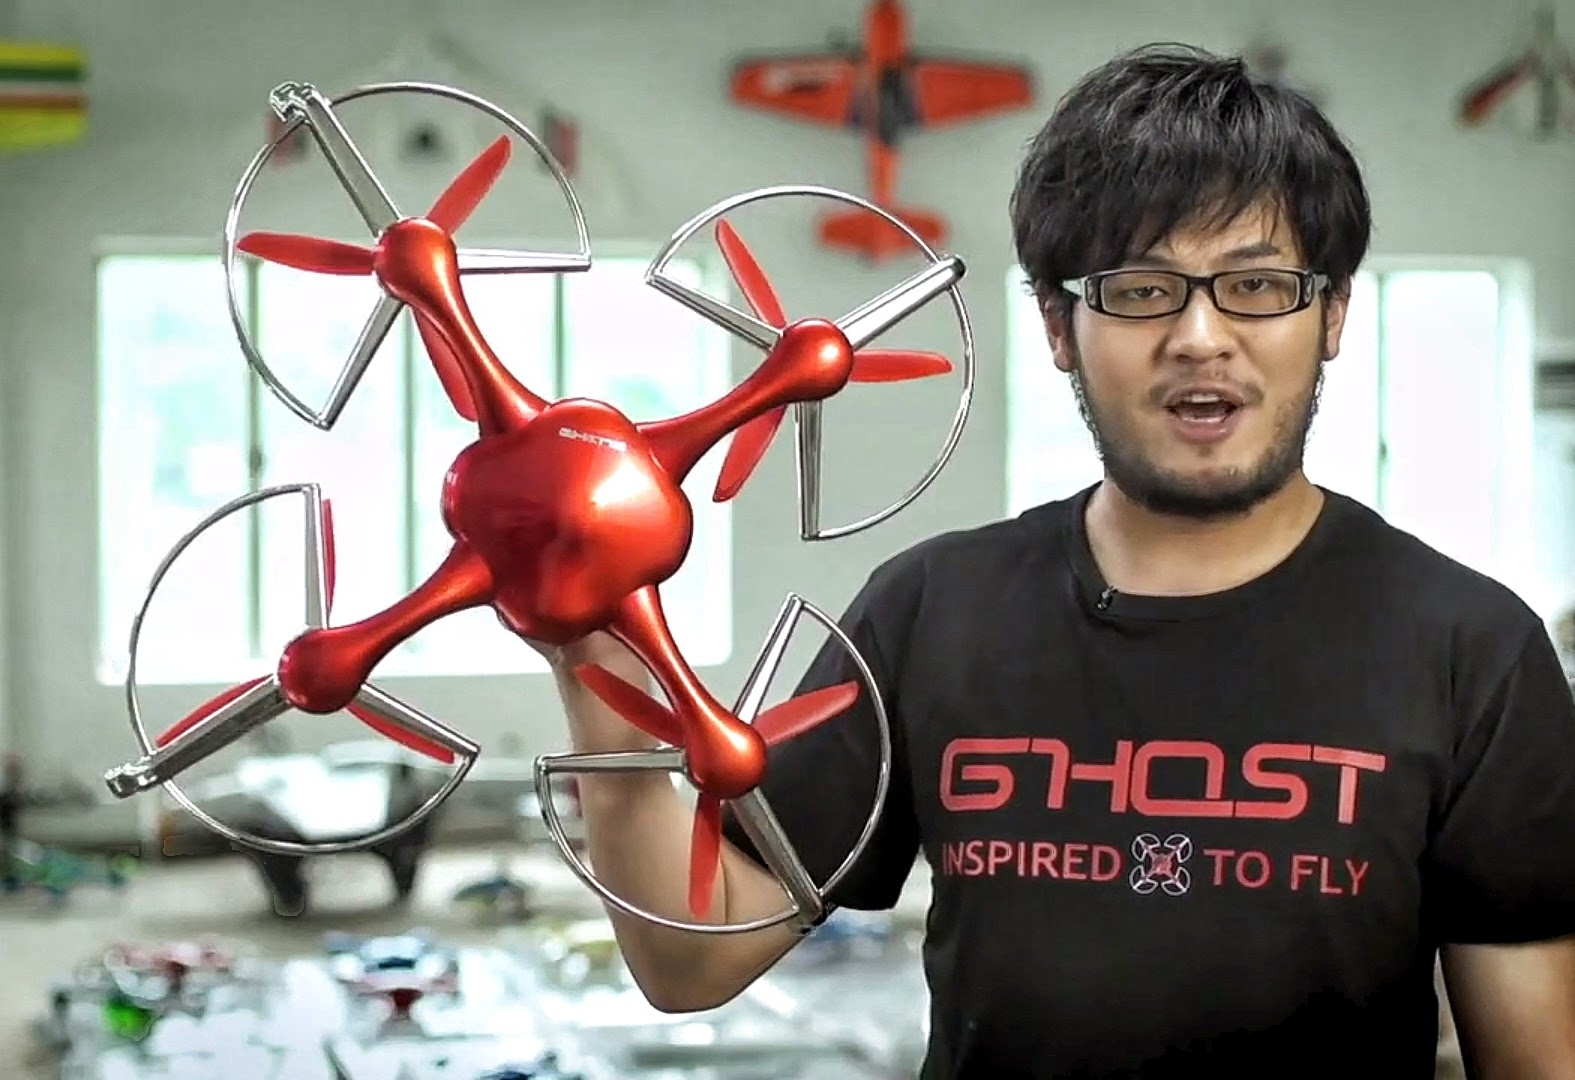 Ehang Ghost Personal Drone